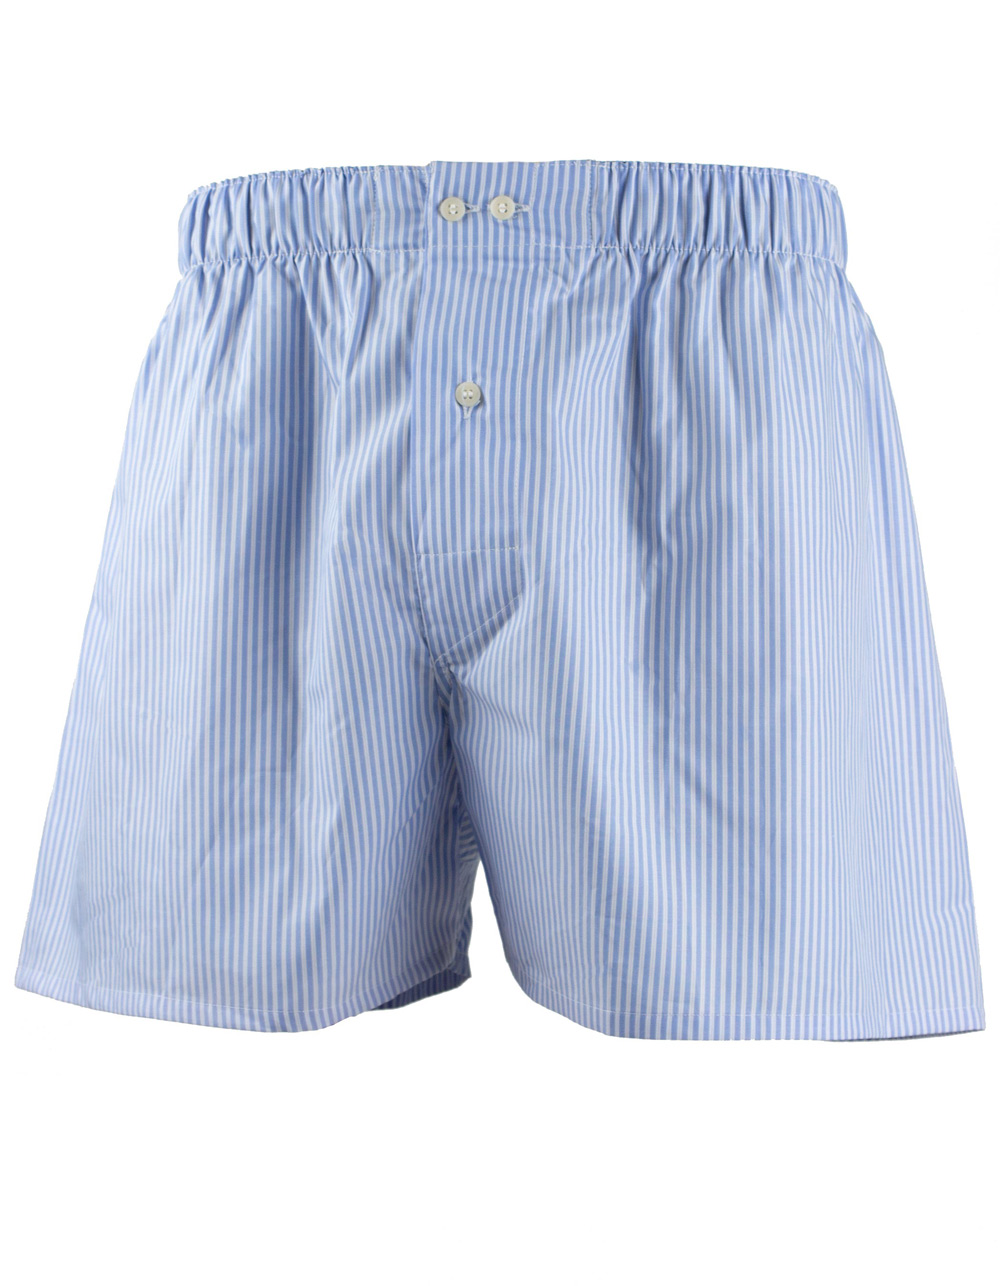 Blue stripes boxer shorts